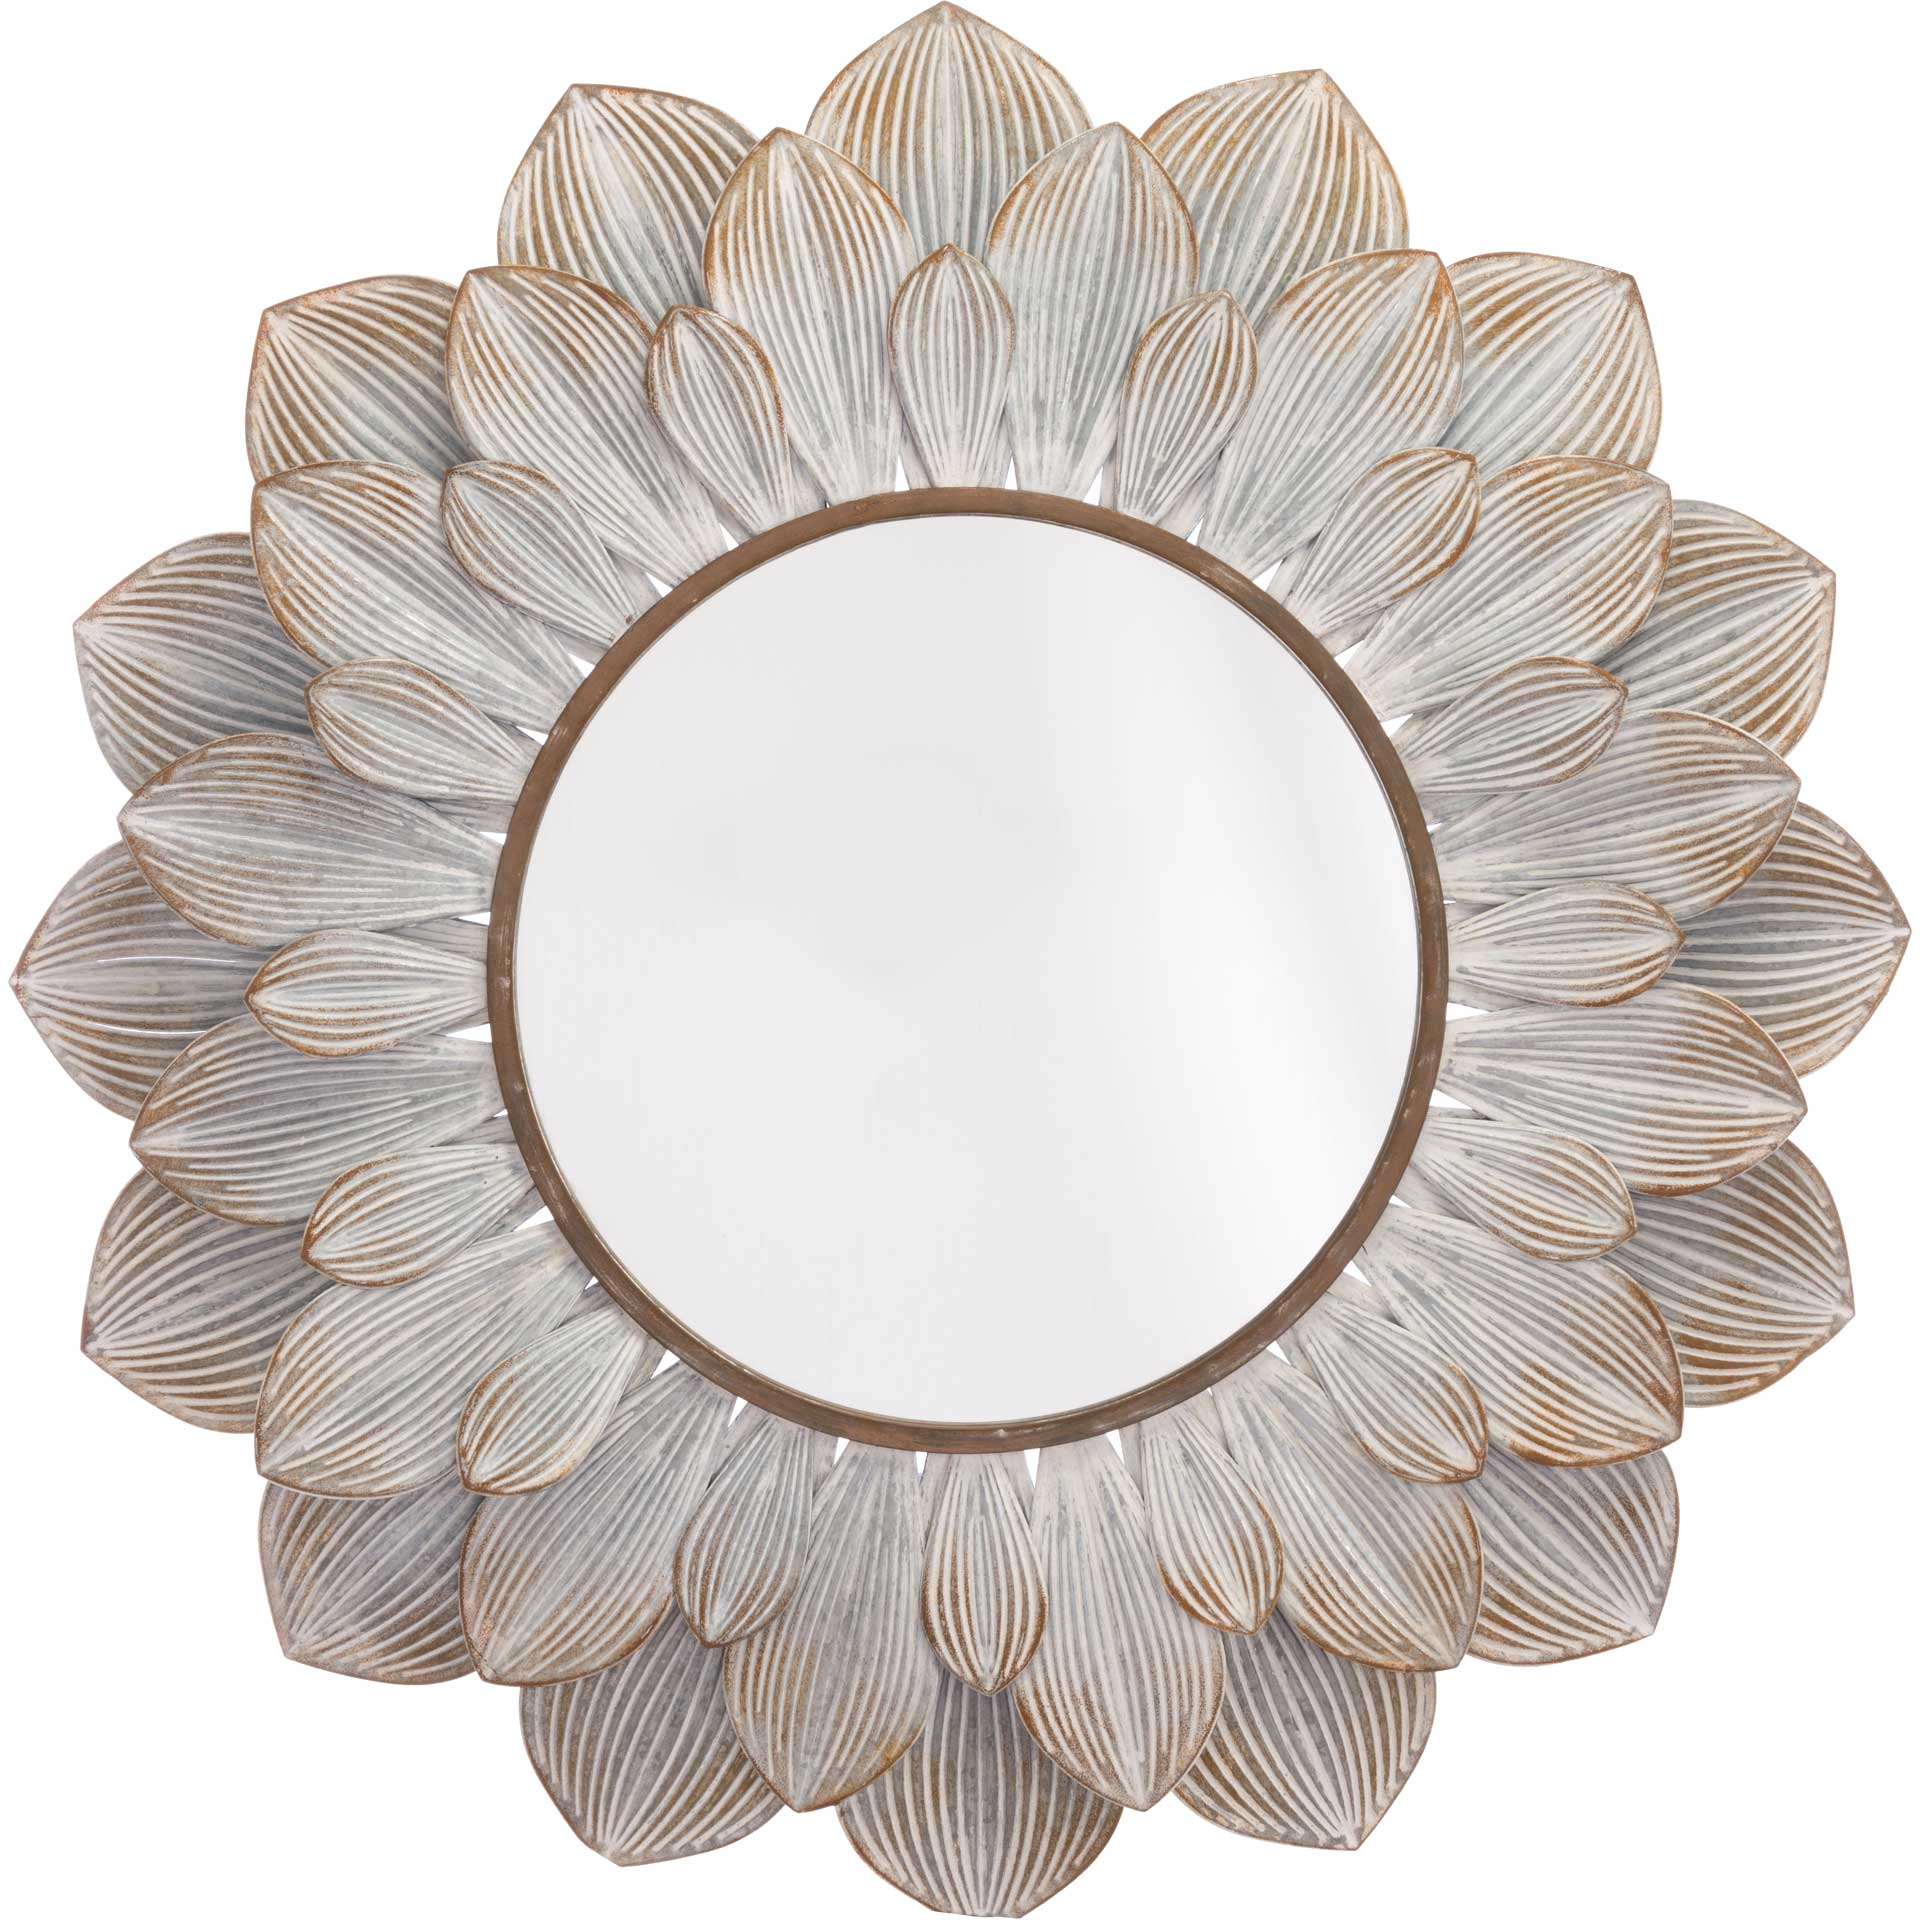 Flora Mirror Distressed Brown